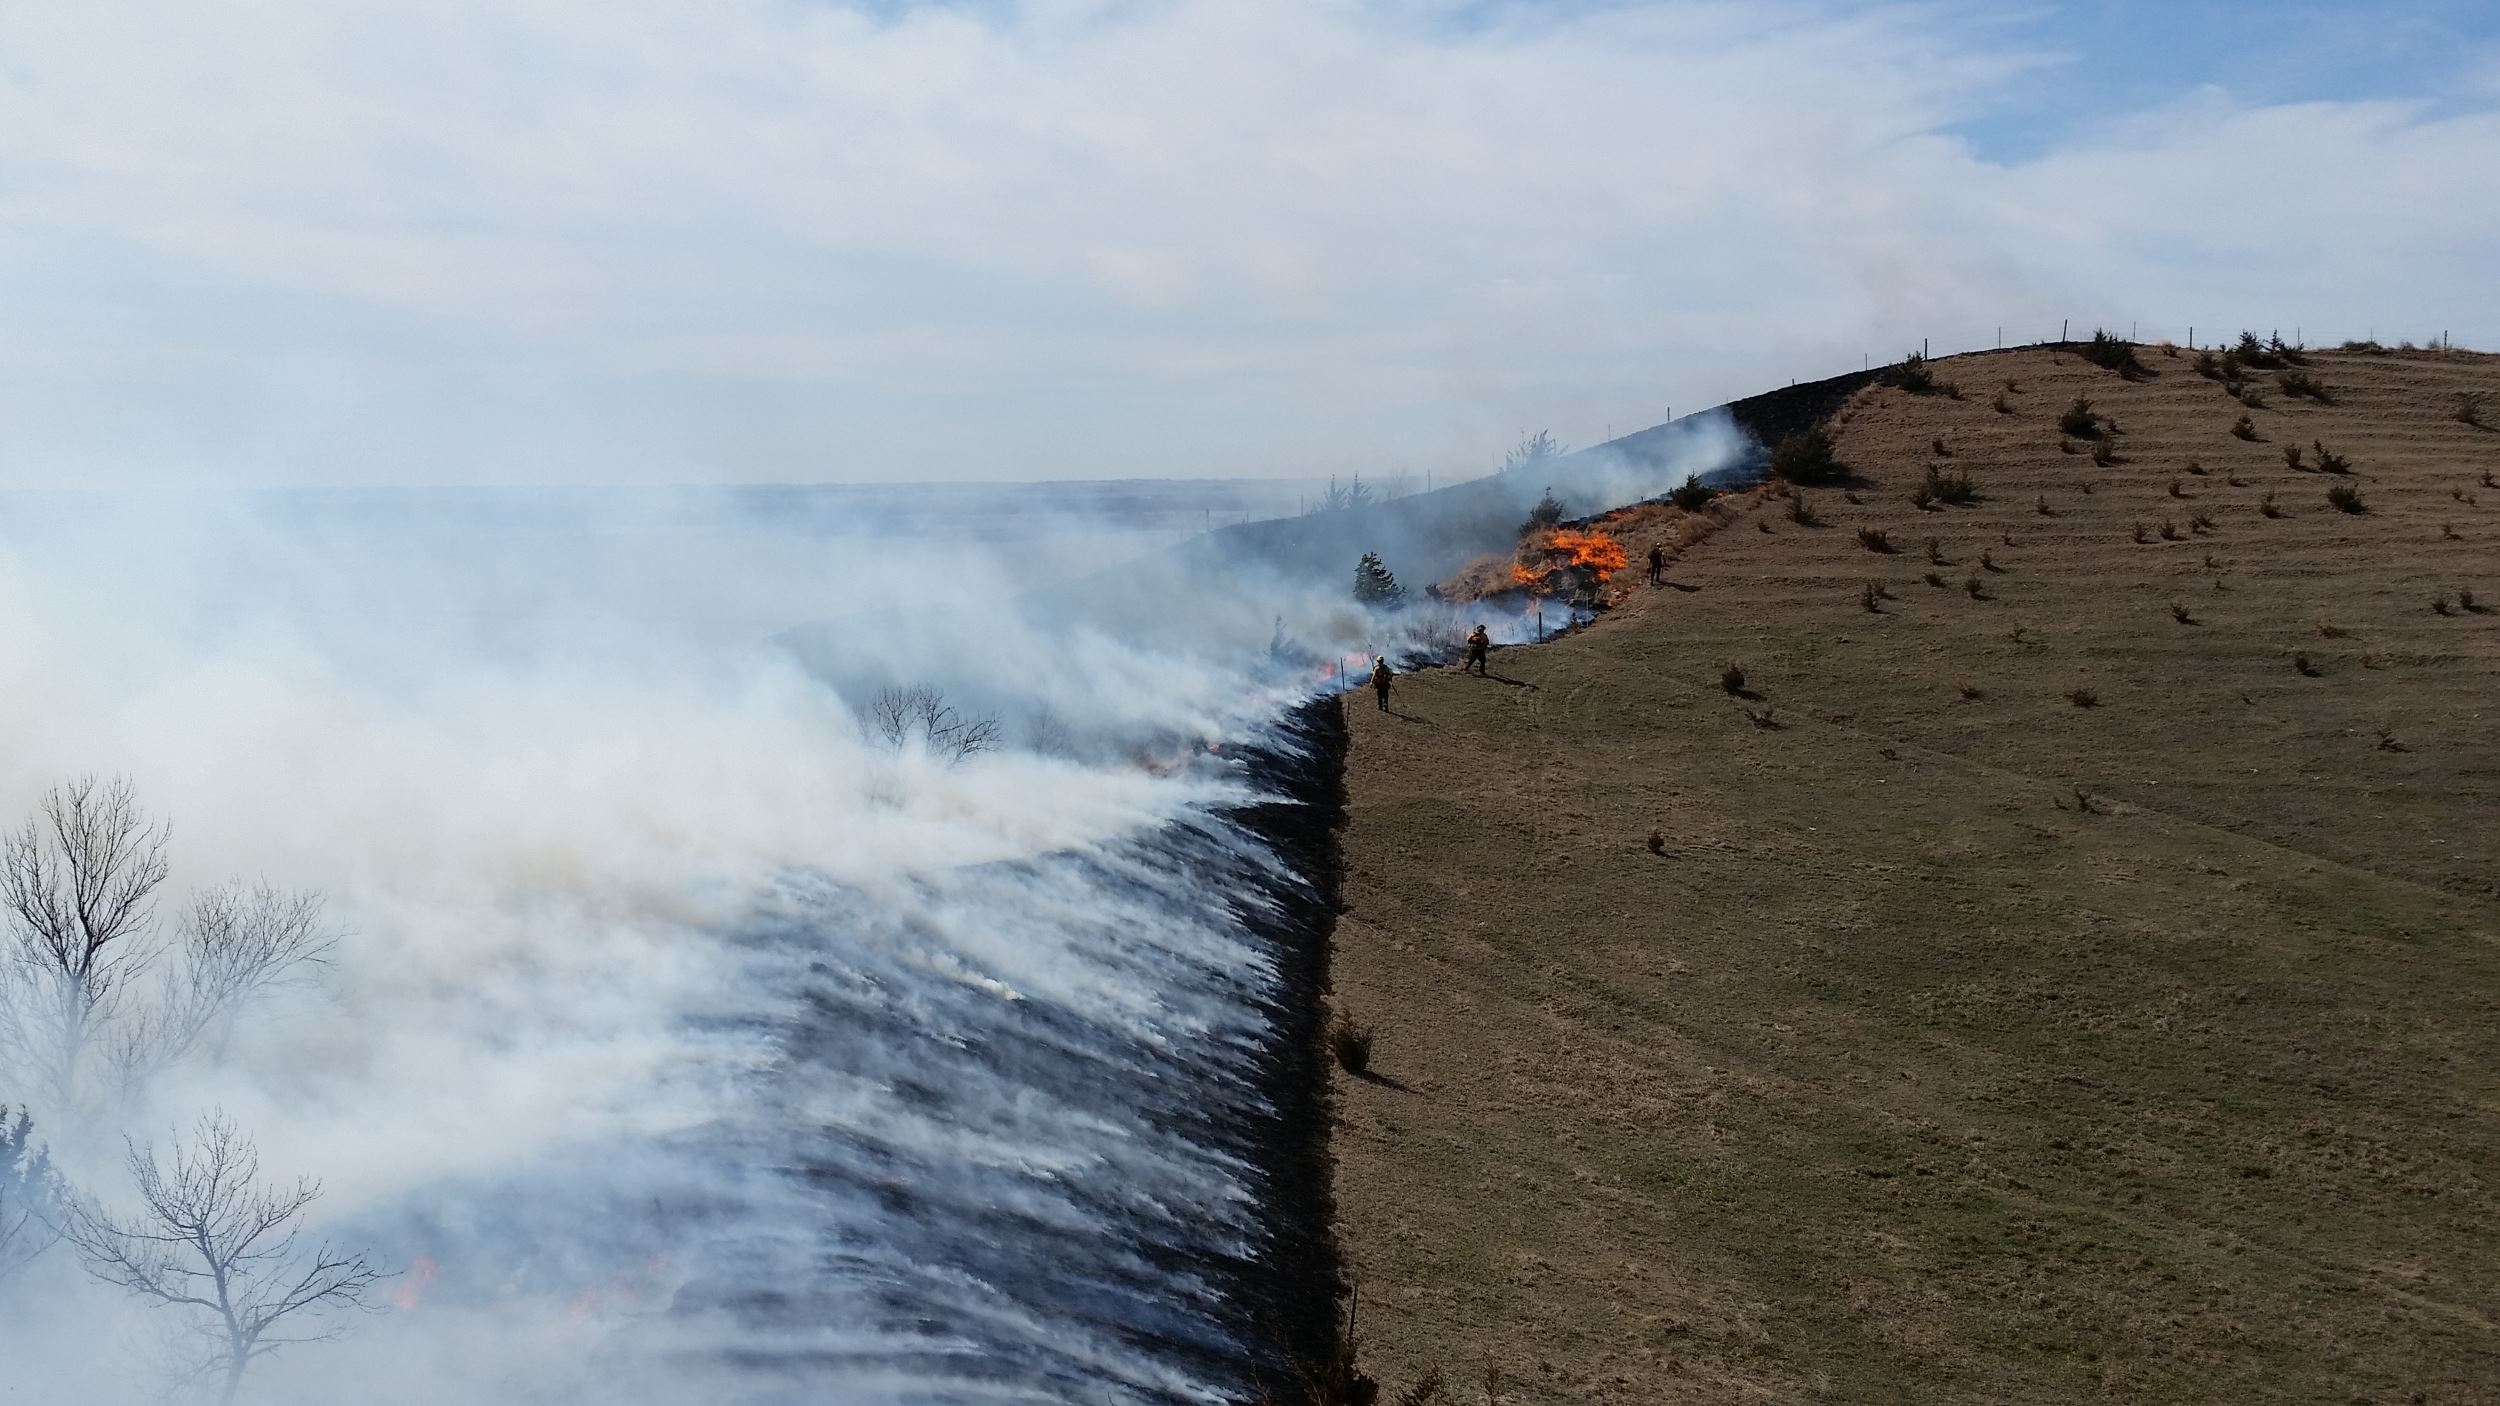 Earth, Wind and Fire: INHF's spring burn season